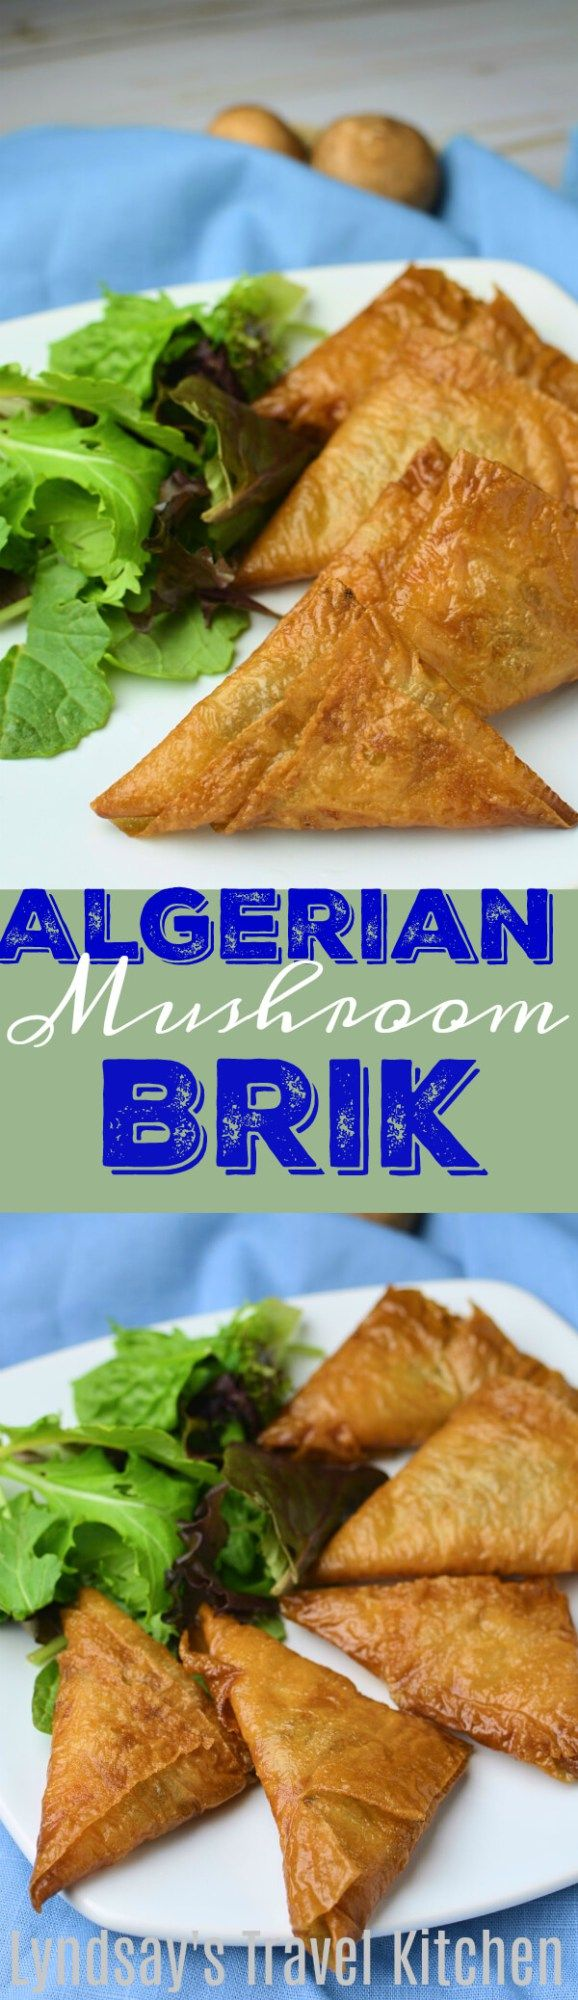 Learn how to make Algerian Mushroom Brik, an African appetizer filled with mushrooms and garlic then fried. Get the recipe at www.lyndsaystravelkitchen.com